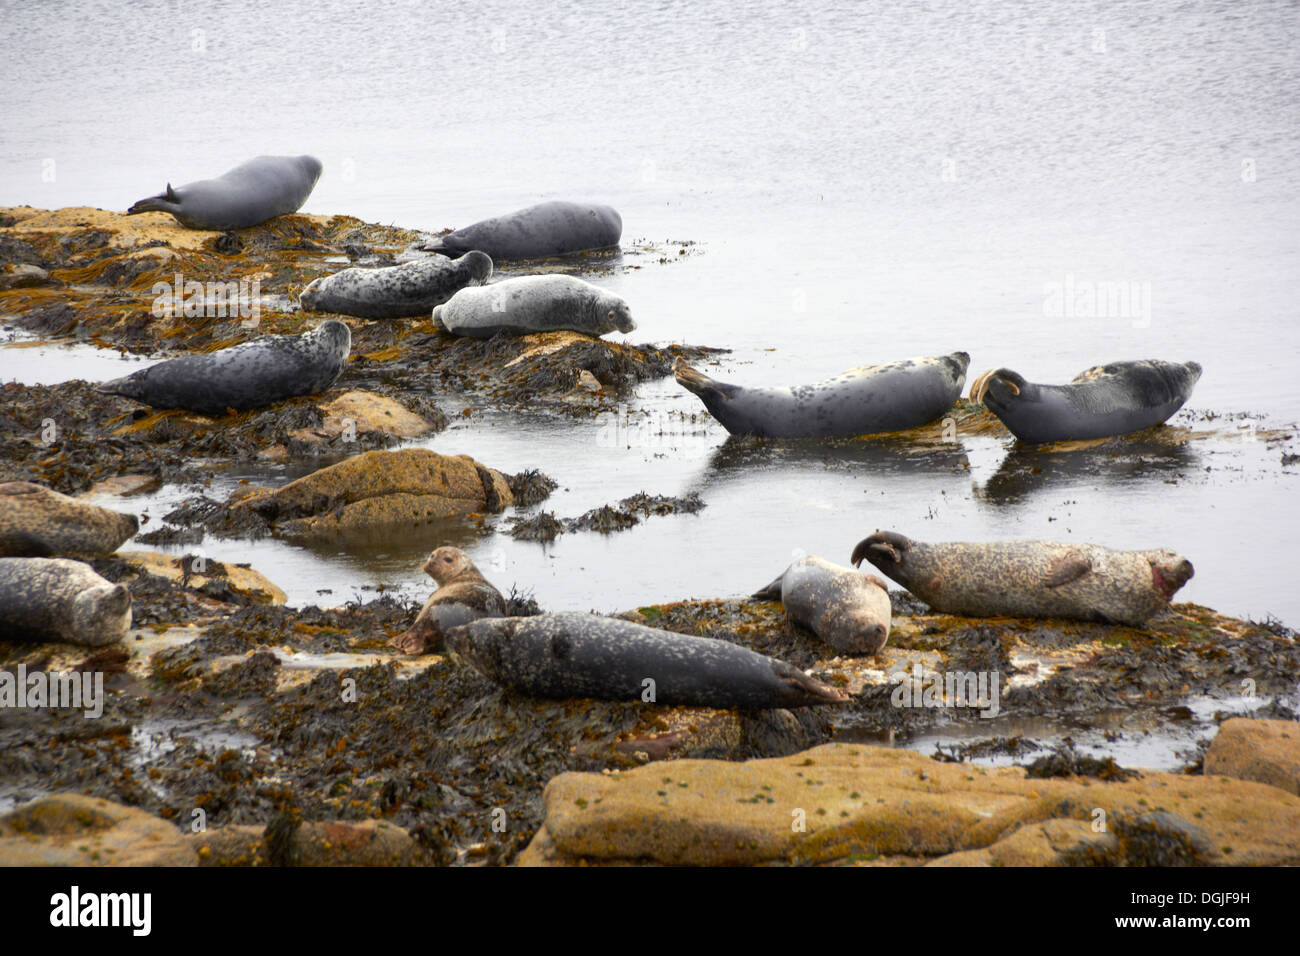 Seals basking on rocks. Stock Photo